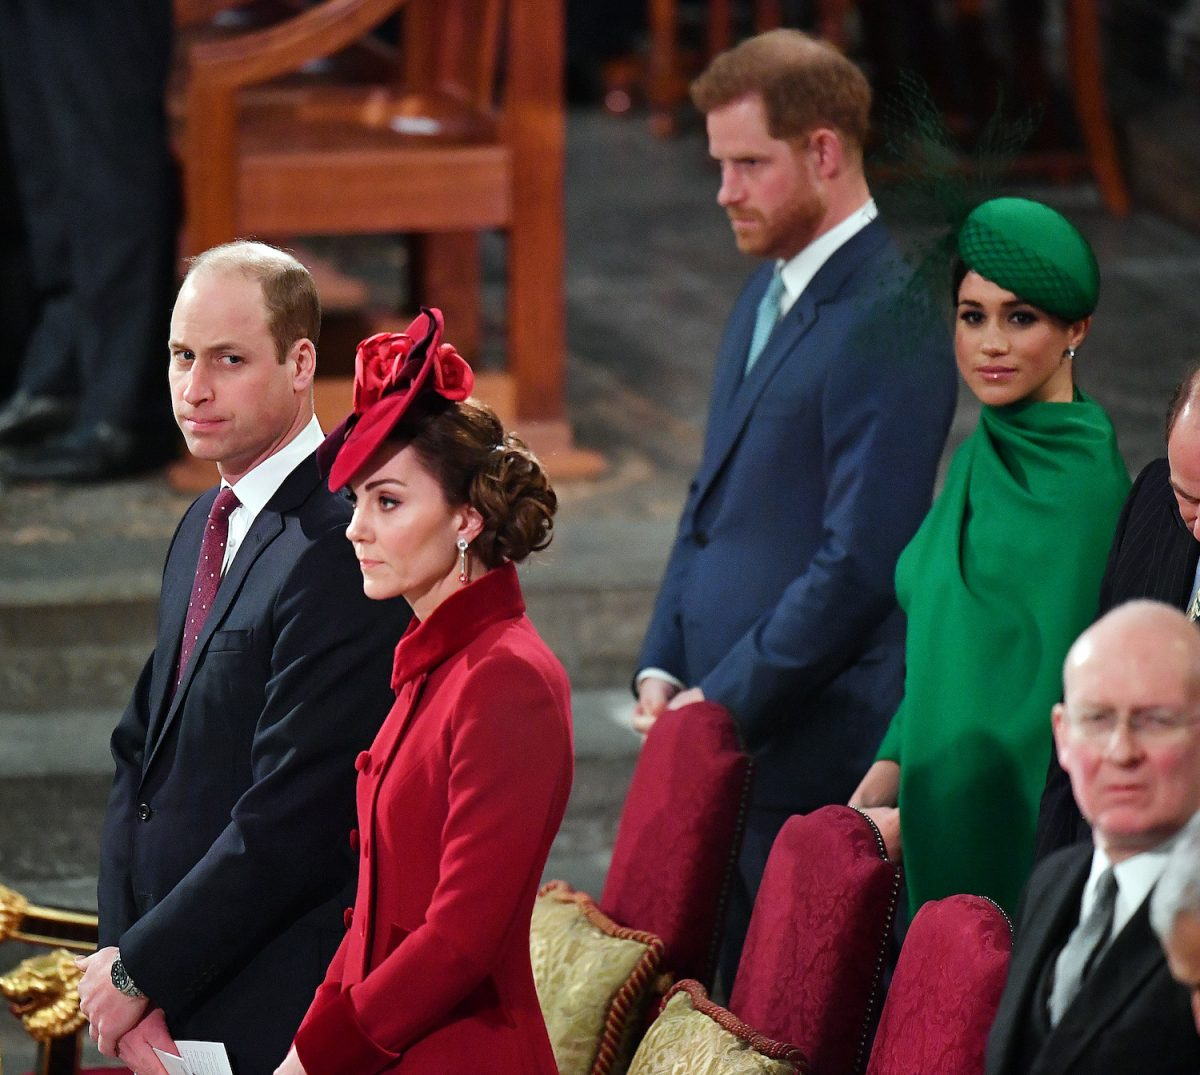 Prince William, Kate Middleton, Prince Harry, and Meghan Markle attend Commonwealth Day Celebrations at Westminster Abbey 2020